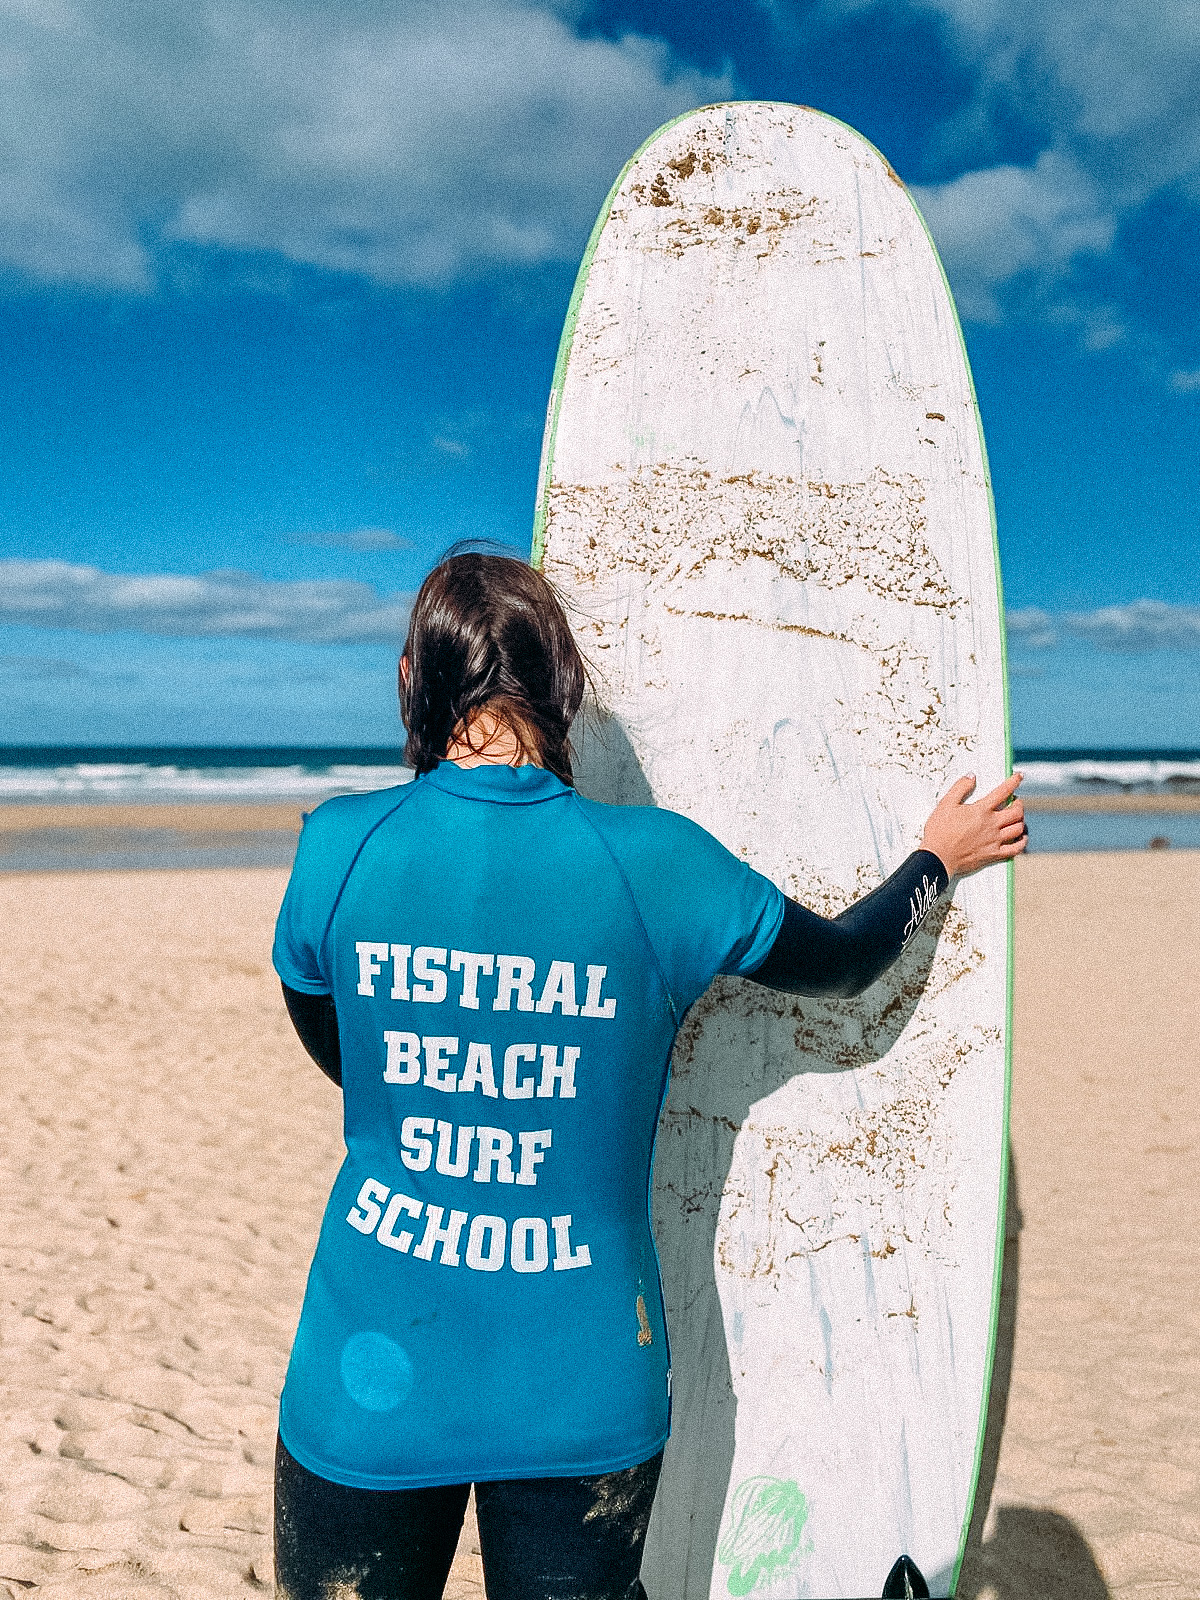 Fistral beach surf lesson in Newquay, North Cornwall